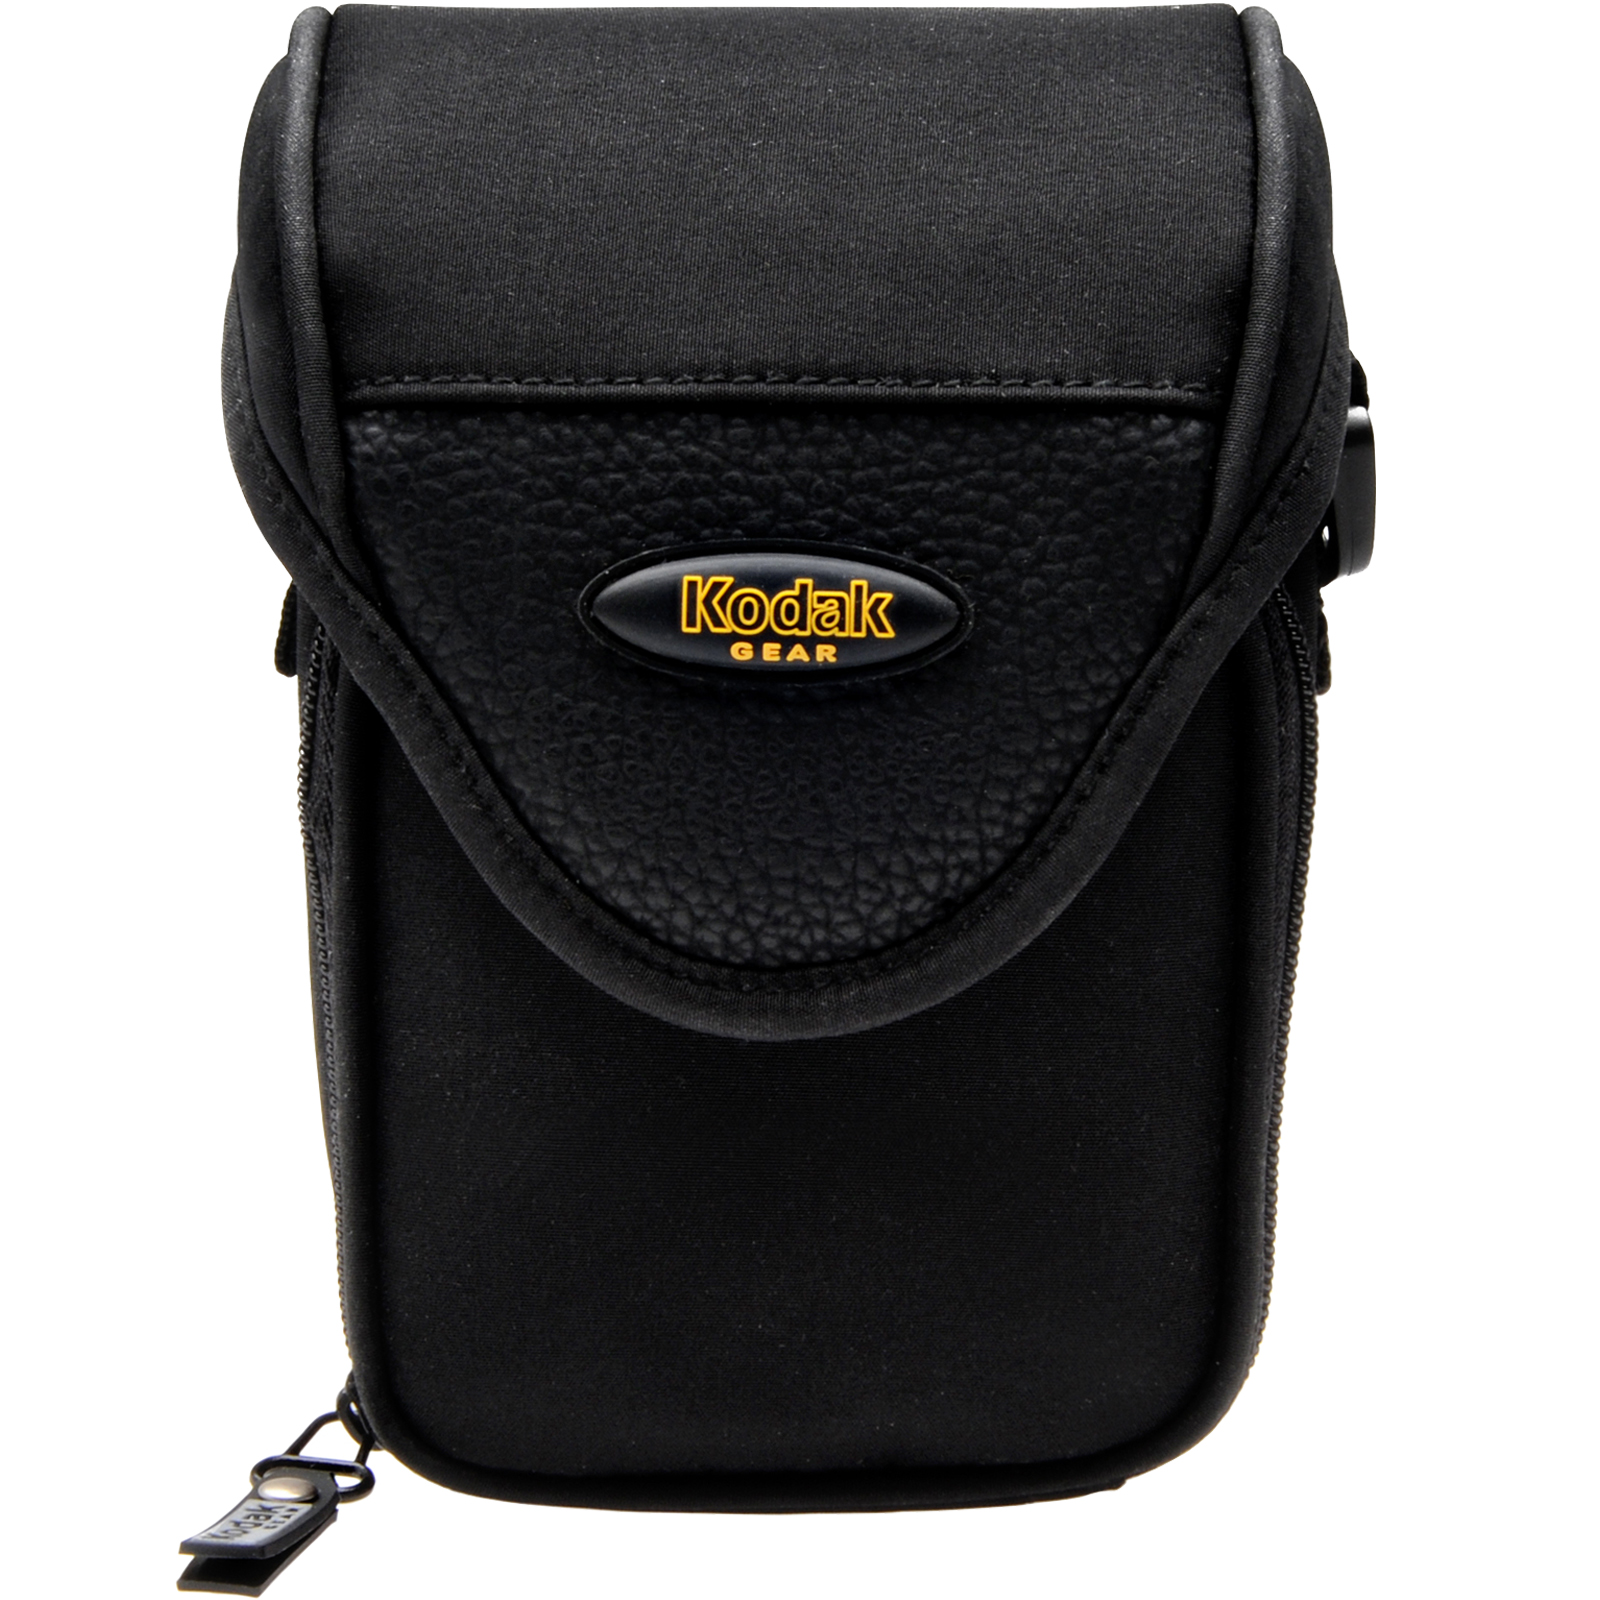 Kodak Gear Twin Pocket Digital Camera Case